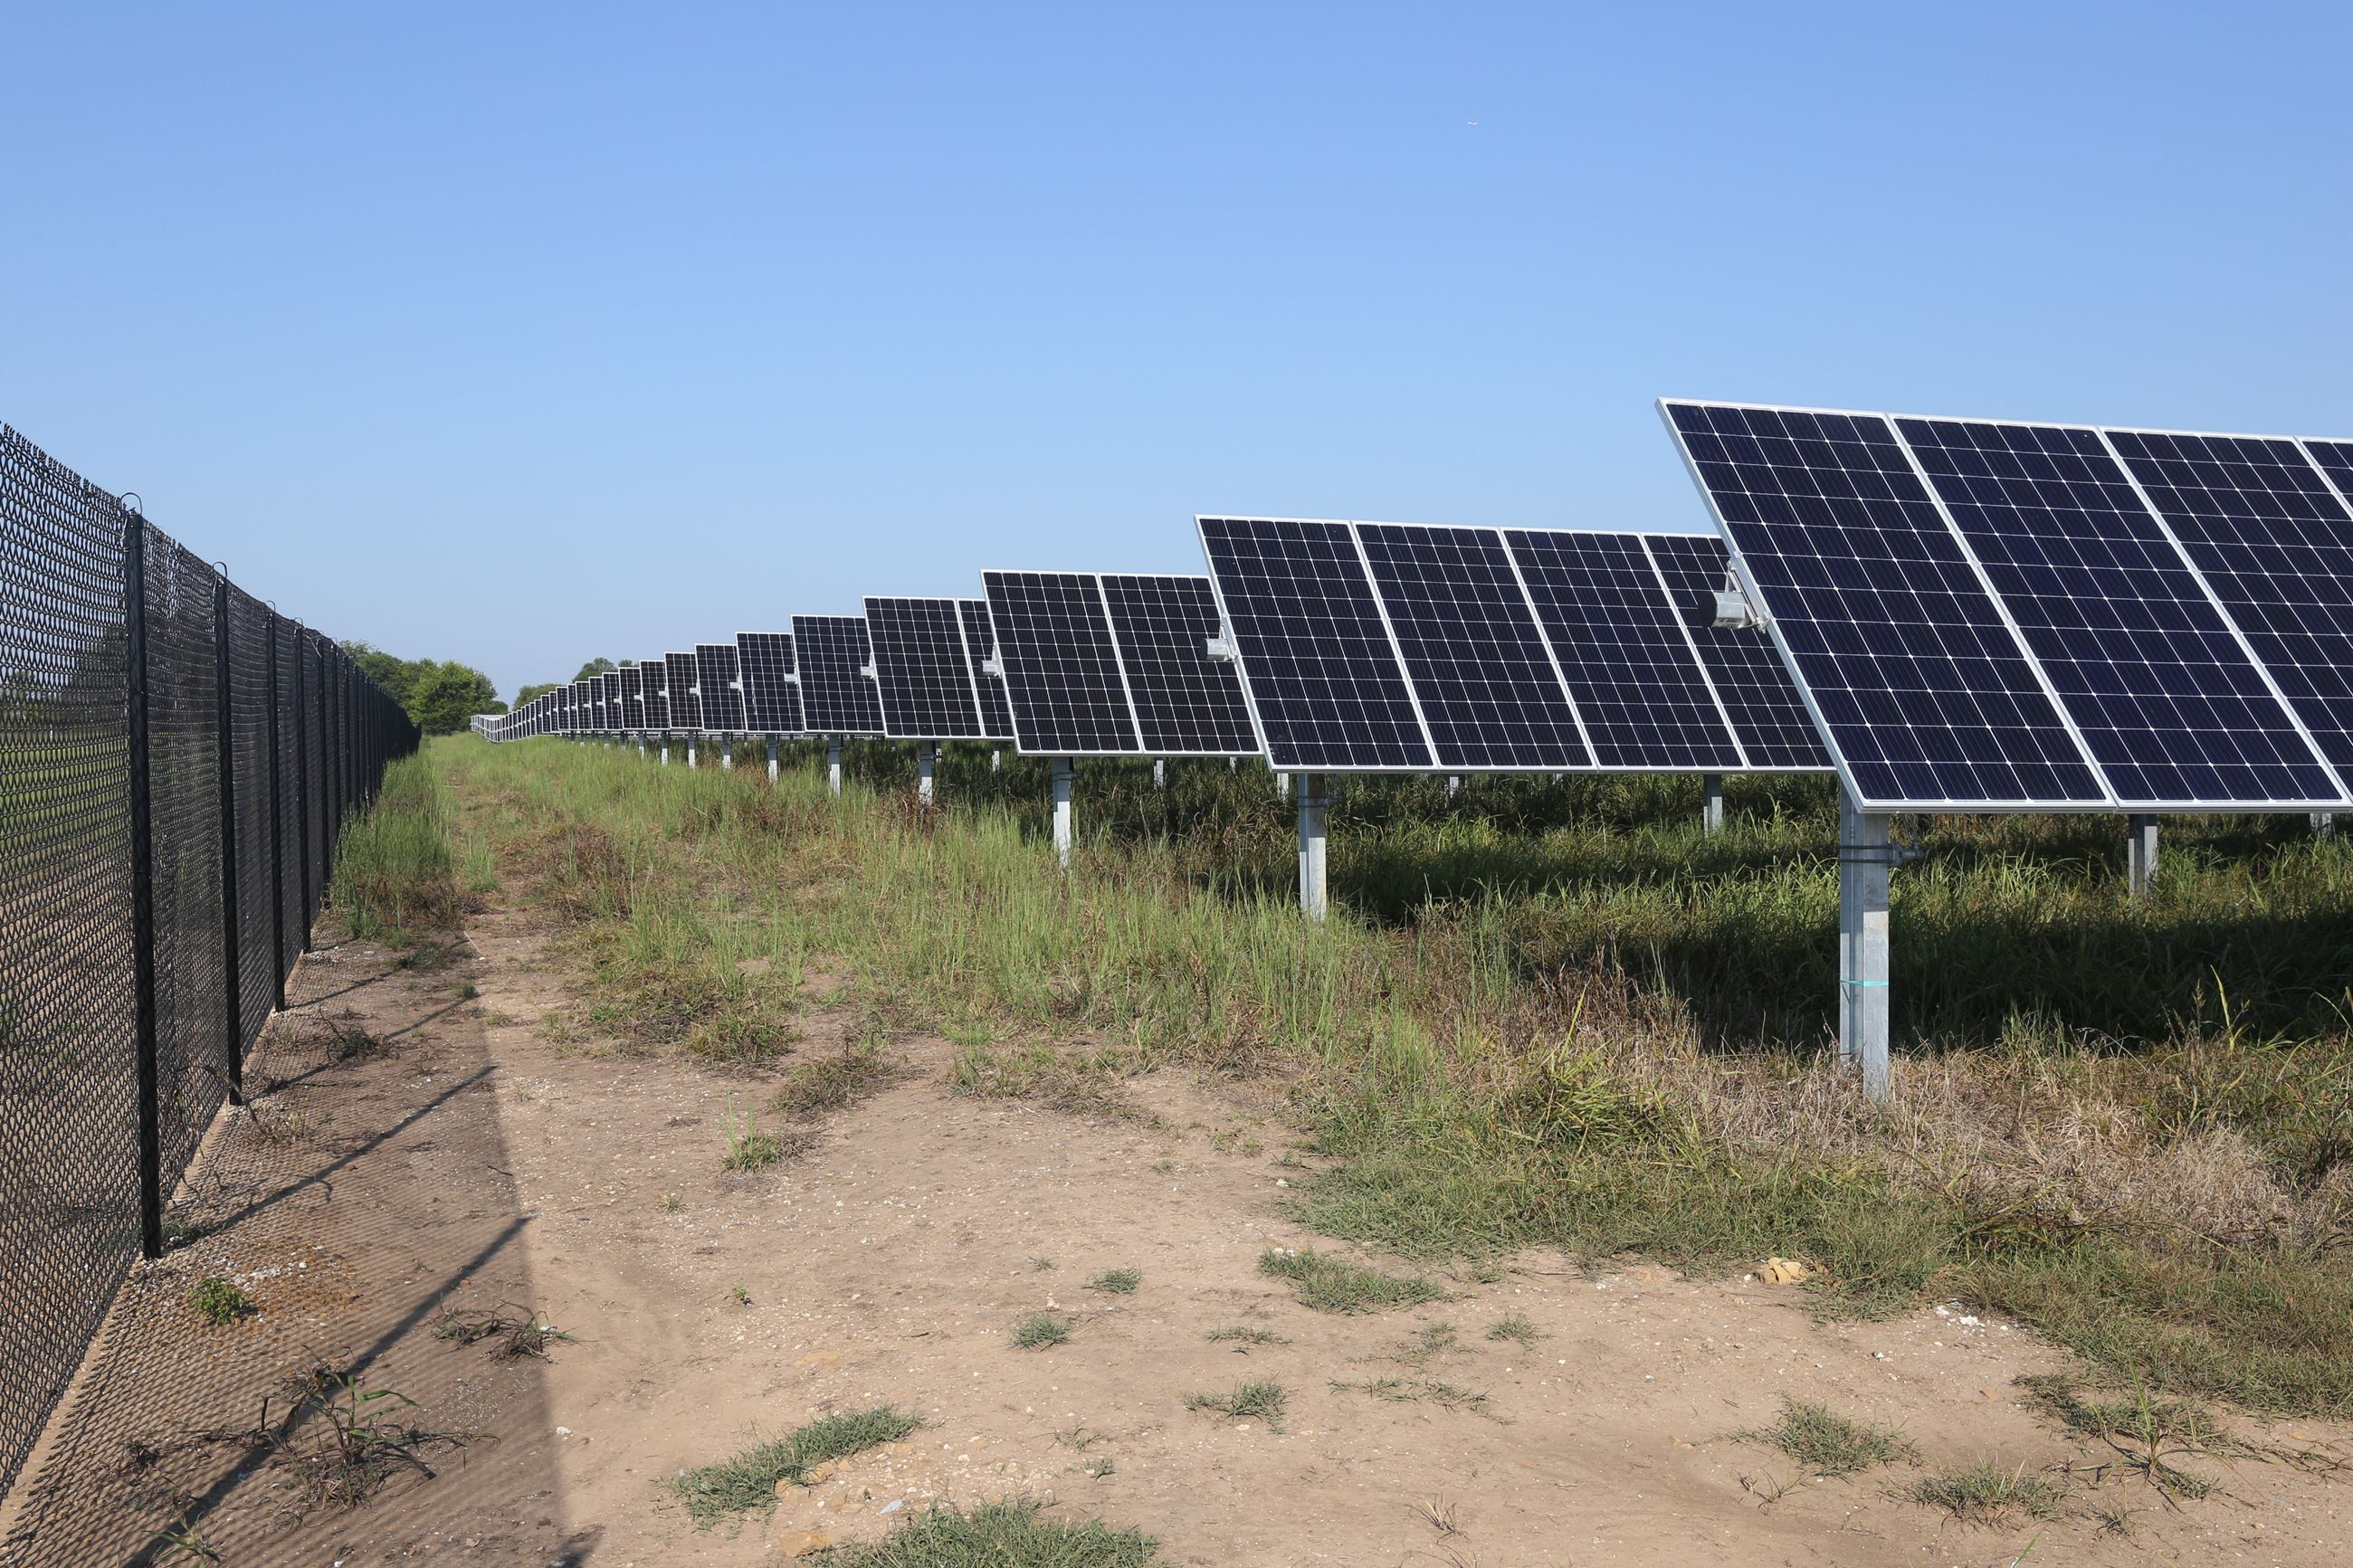 Image of long rows of solar panels